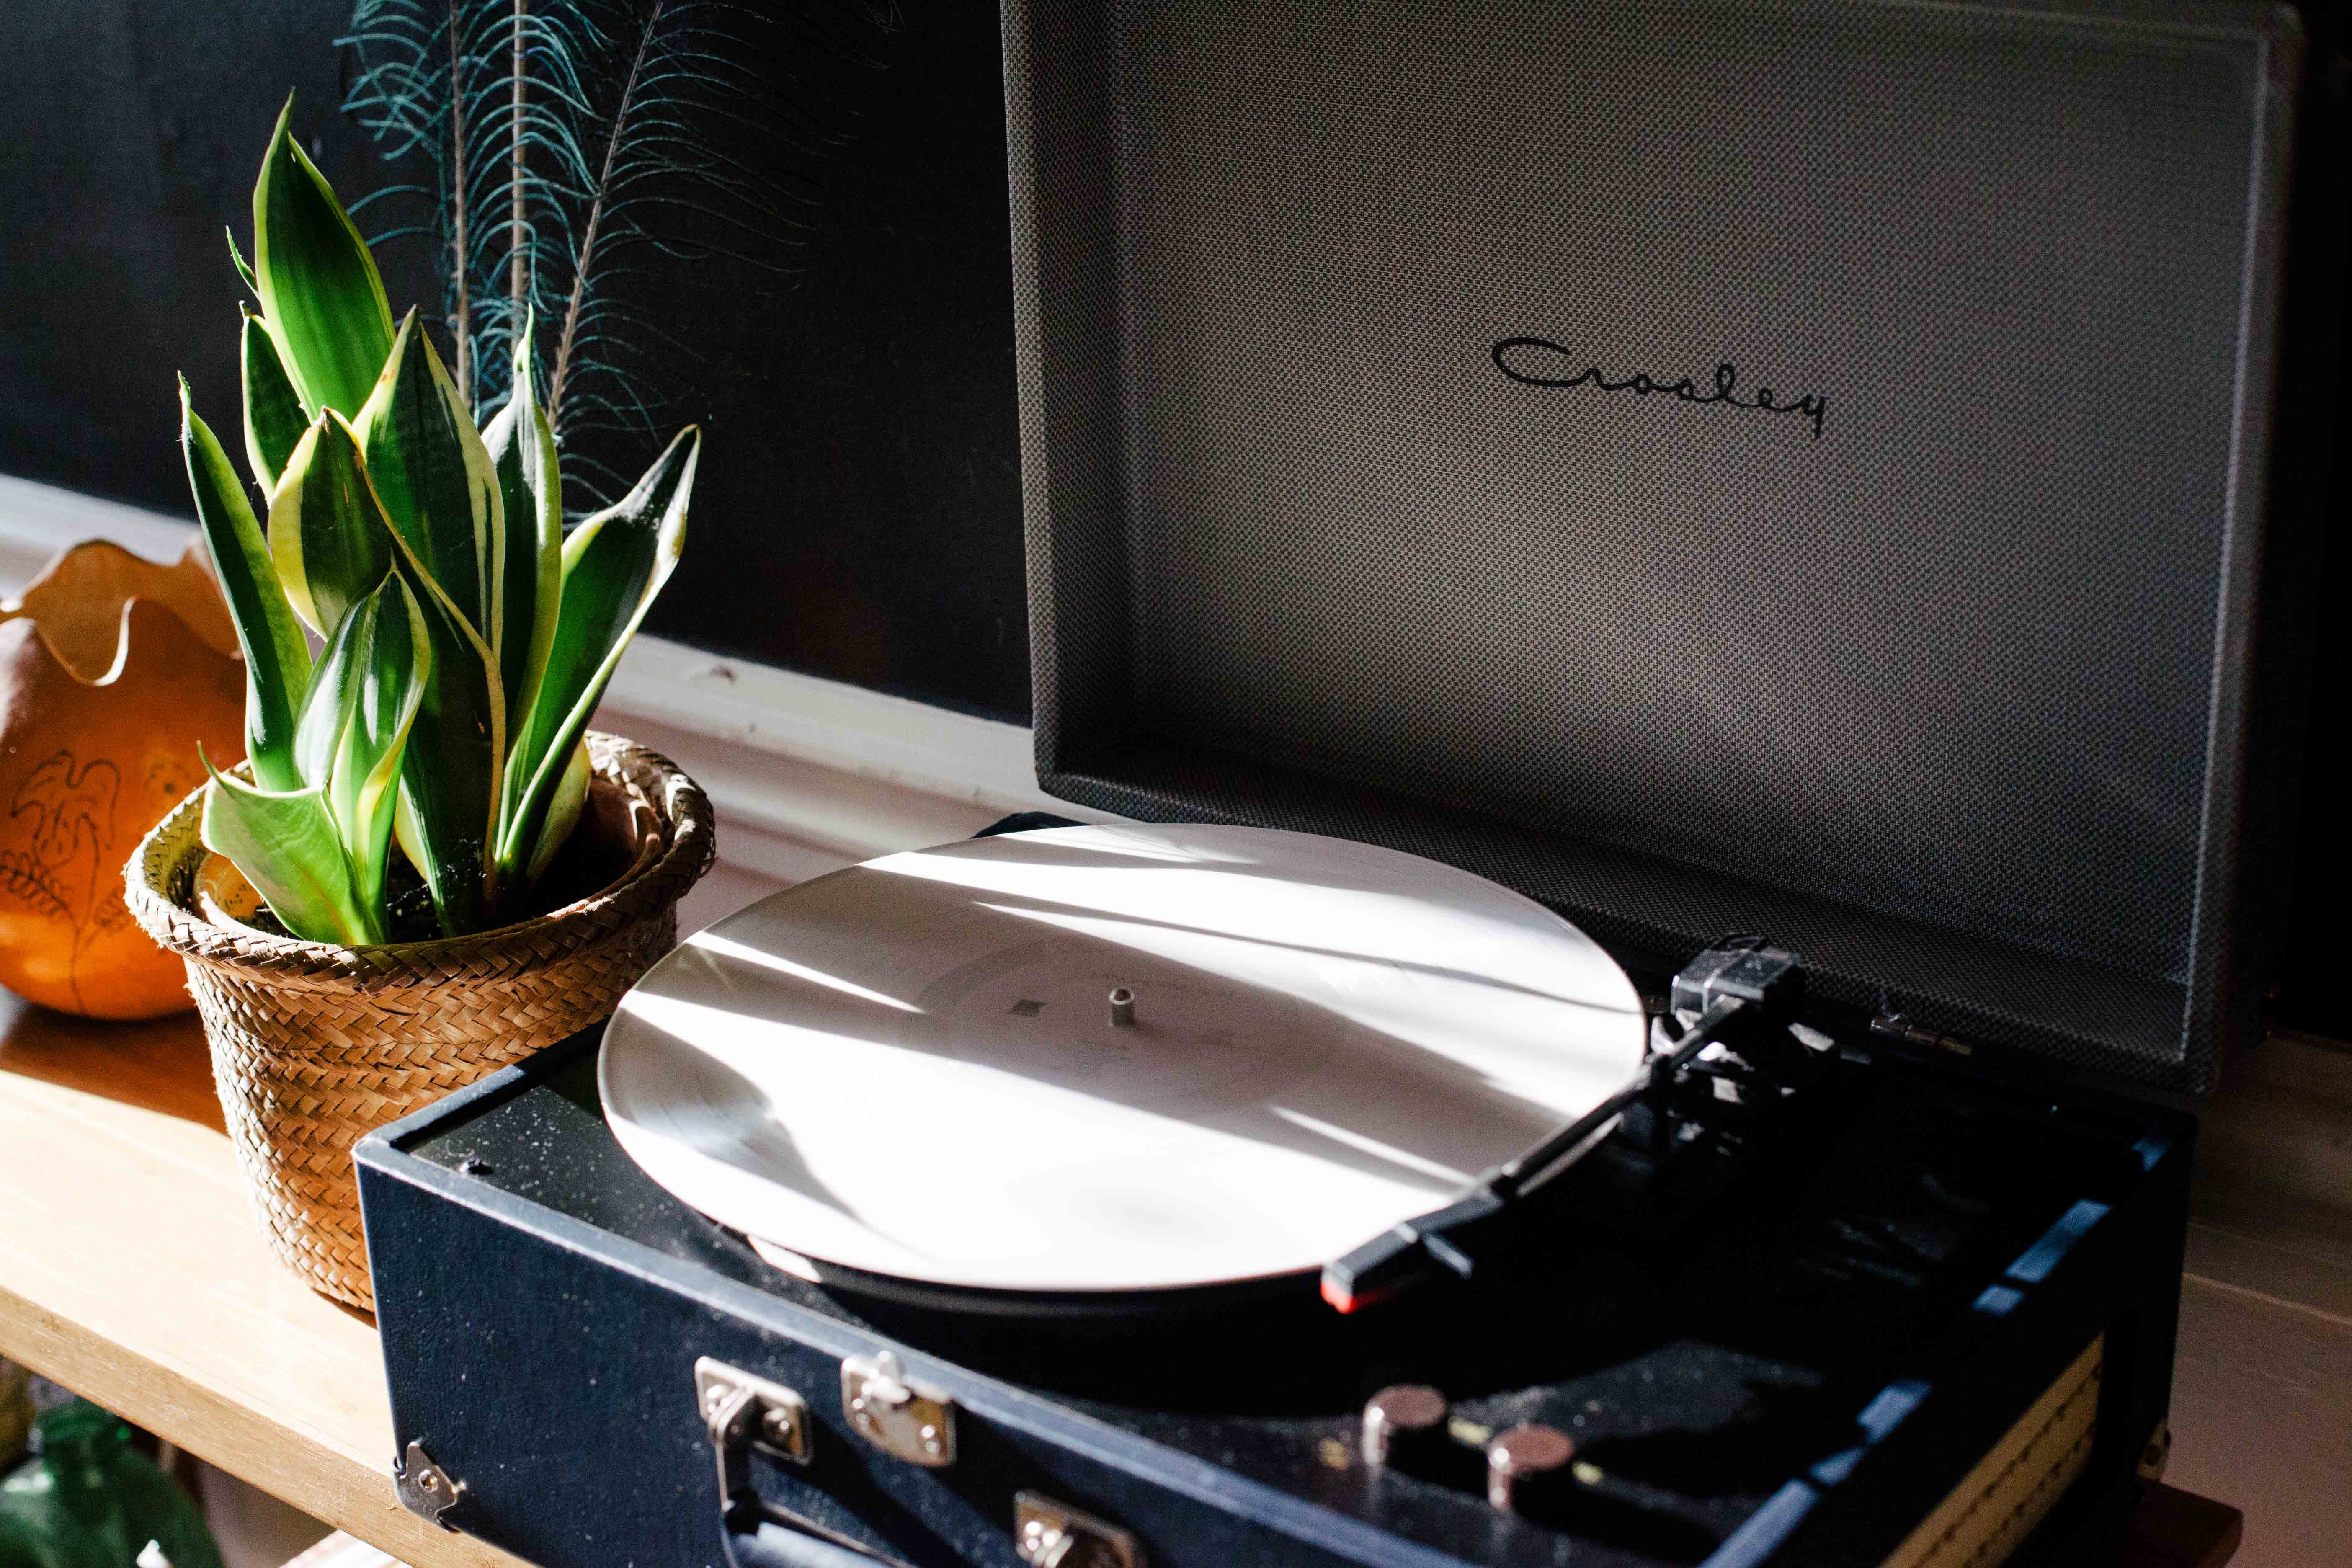 Best Portable Record Player - 2019 Buyer's Guide and Reviews